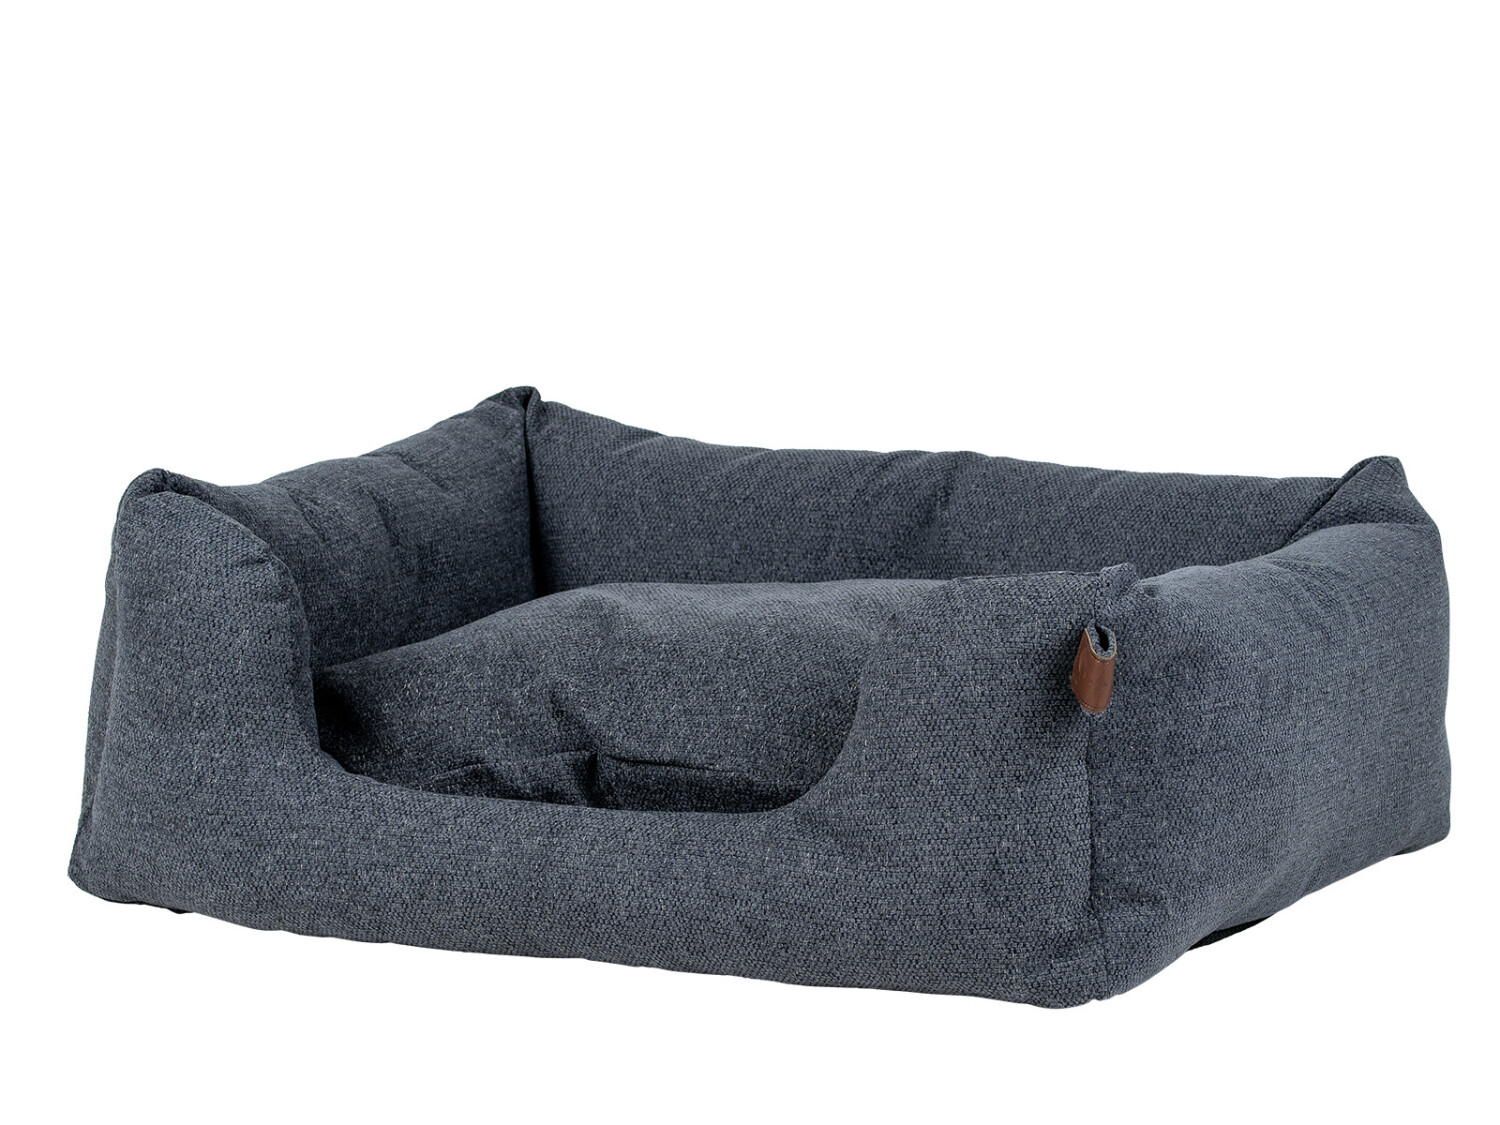 Hondenmand Fantail Snooze 80 x 60 cm Epic grey